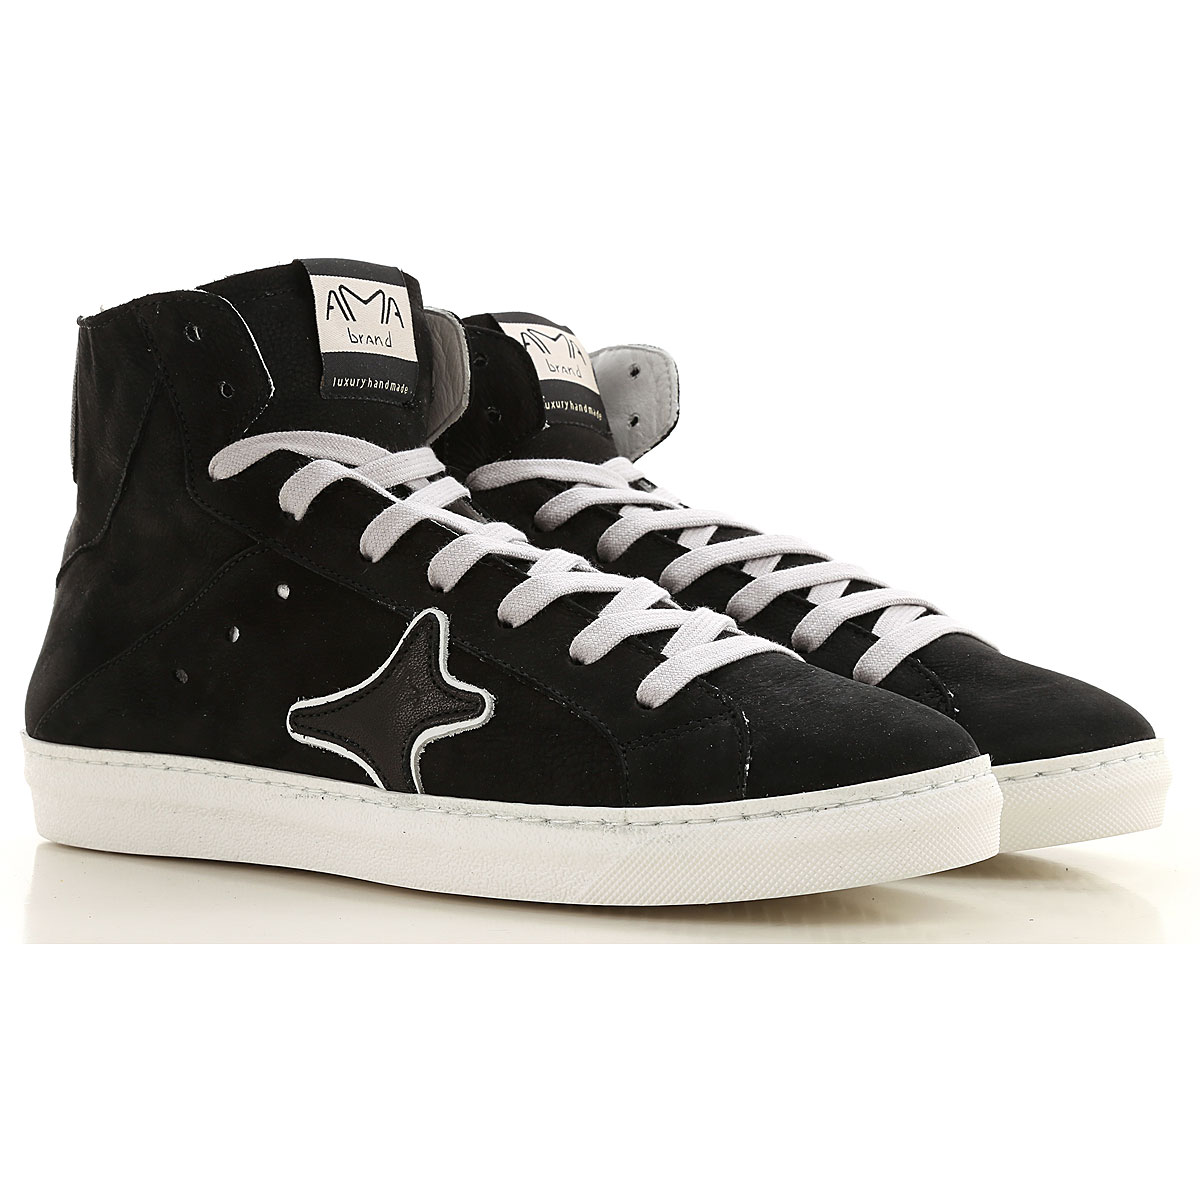 Ama Brand Sneakers for Men On Sale, Black, Leather, 2019, EUR 40 - UK 6 - USA 7 EUR 42 - UK 8 - USA 8.5 EUR 43 - UK 9 - USA 9.5 EUR 44 - UK 9.5 - USA